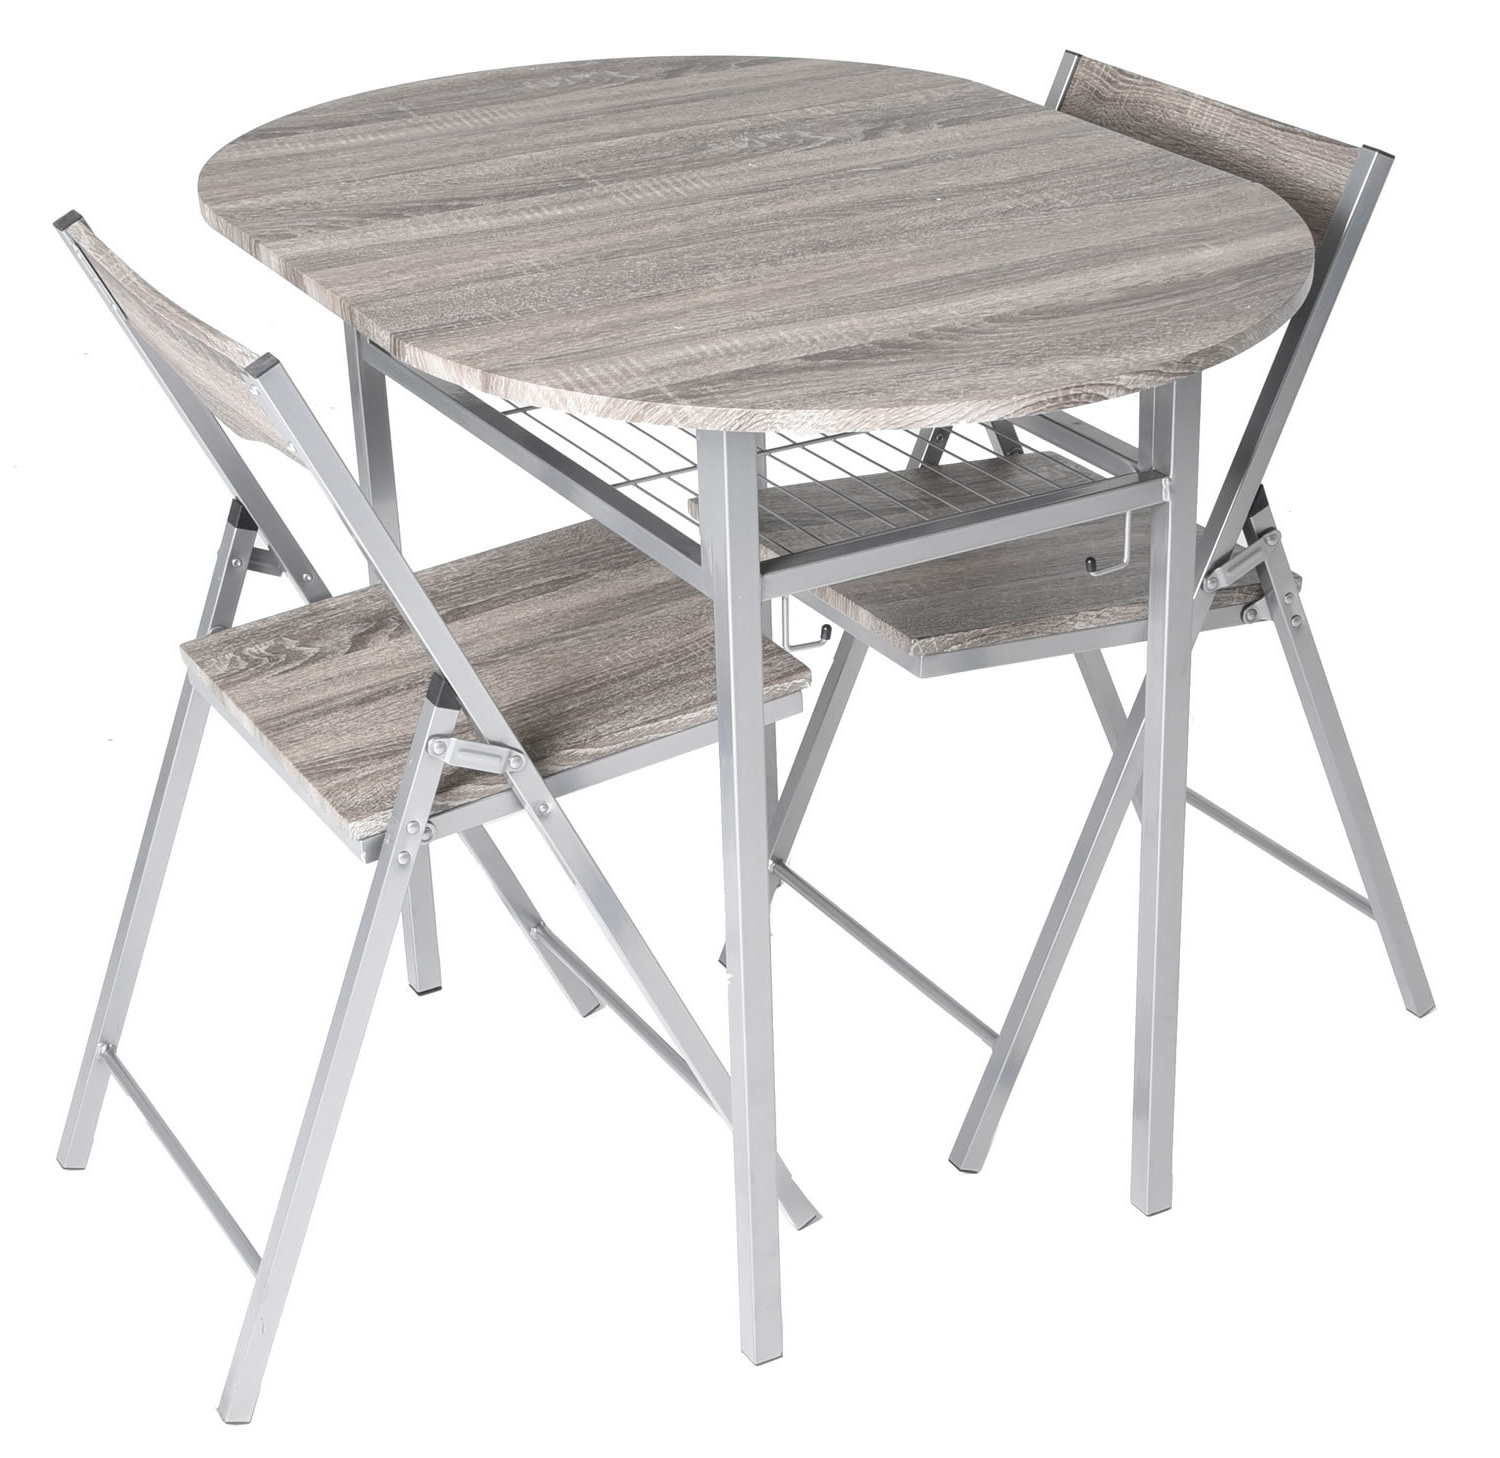 Ebern Designs Horner Wood 3 Piece Drop Leaf Breakfast Nook Dining Throughout Fashionable Honoria 3 Piece Dining Sets (View 2 of 25)